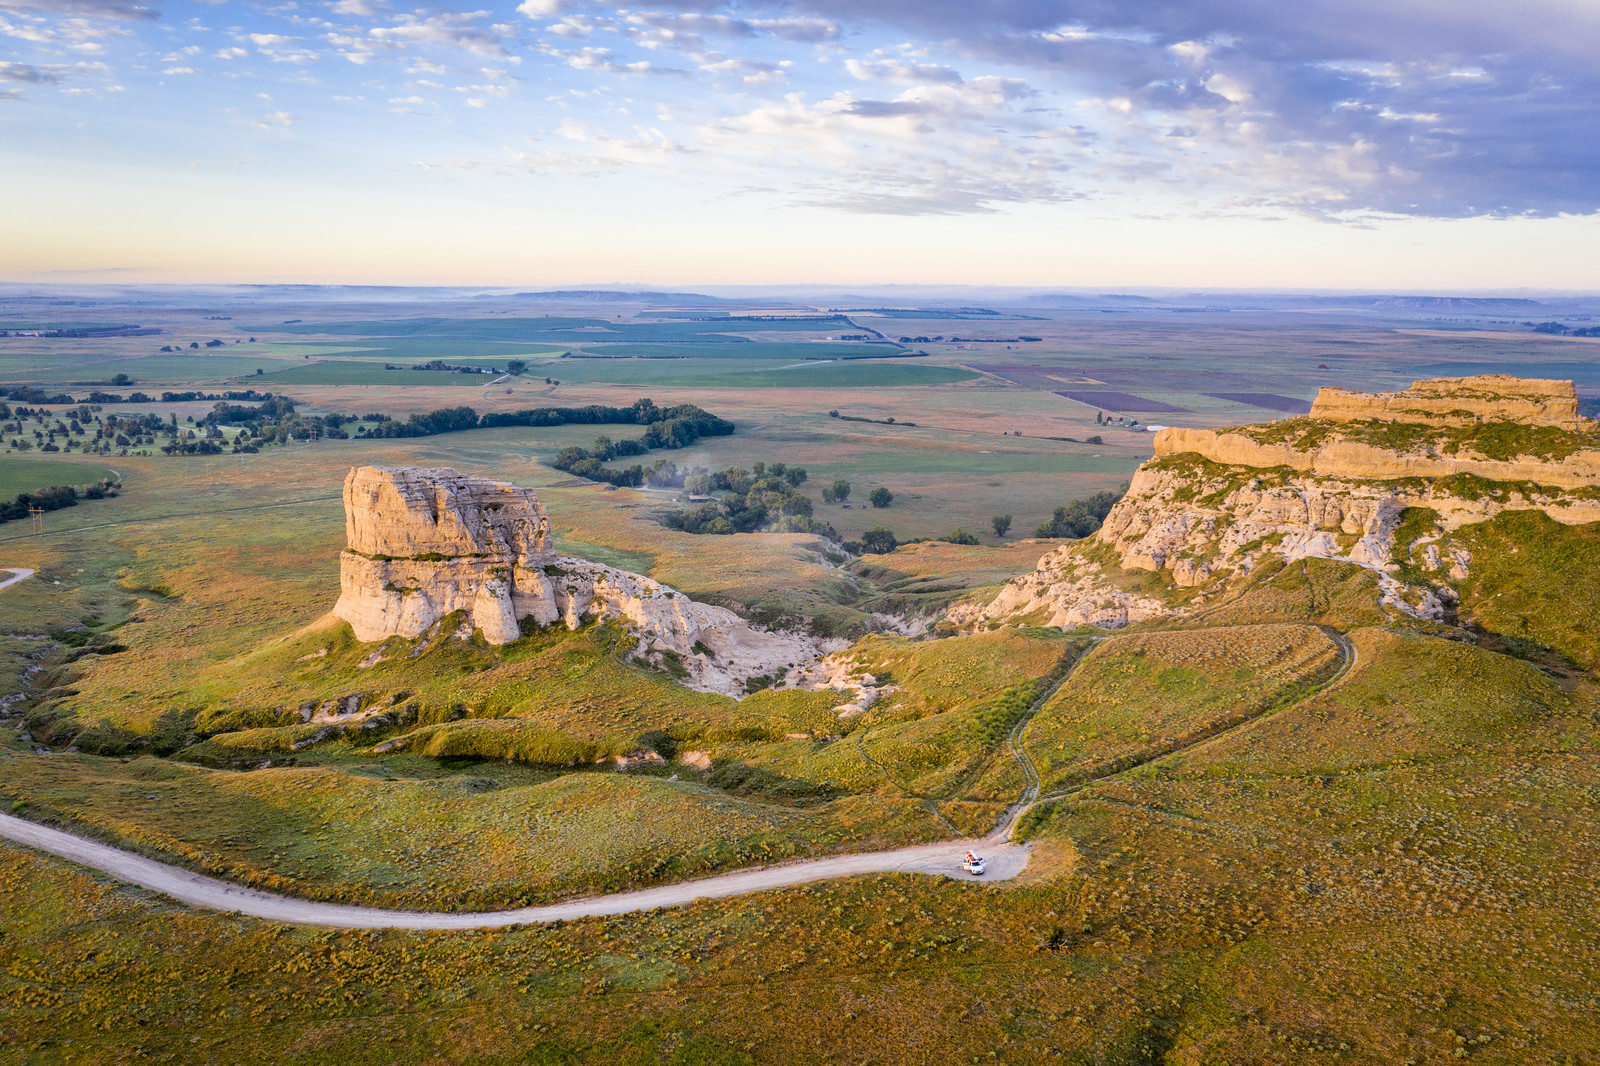 Courthouse and Jail Rocks in Gering Nebraska, the photo is from above overlooking the landscape, in the far distance farmland.  And Roads cutting through the rock formations.